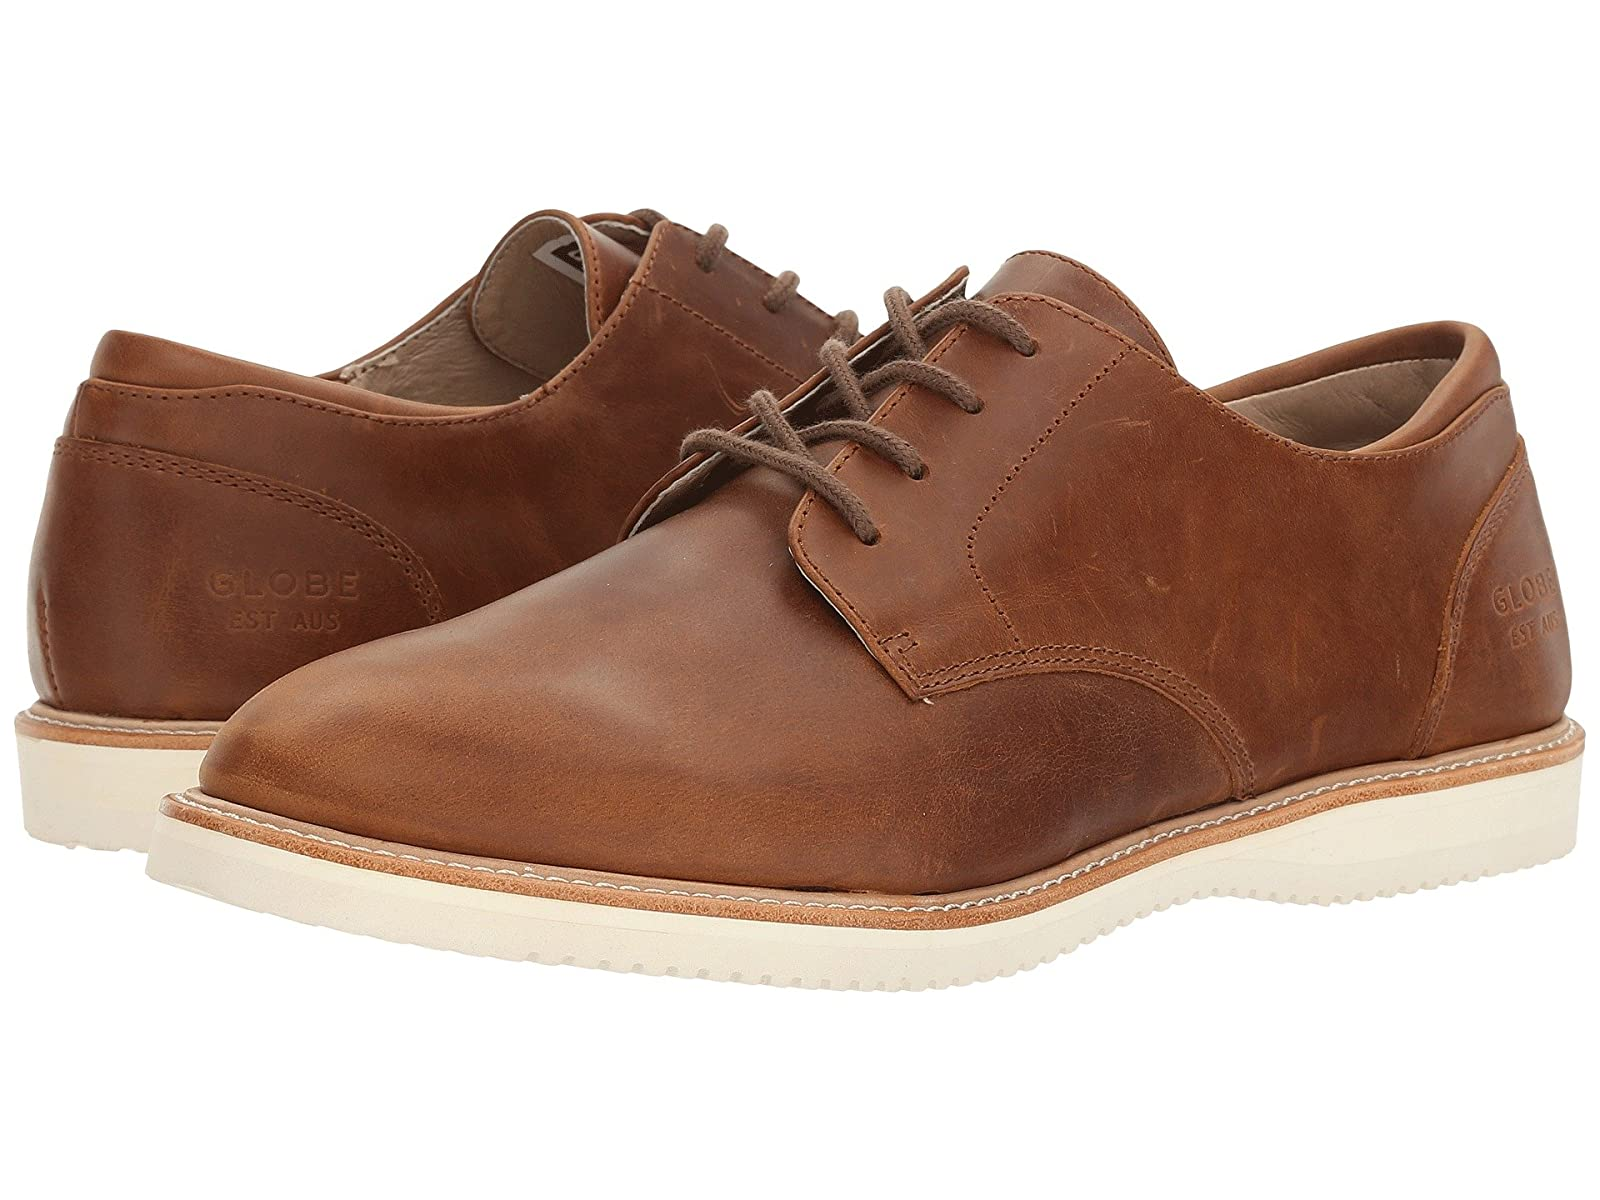 Globe WolfCheap and distinctive eye-catching shoes